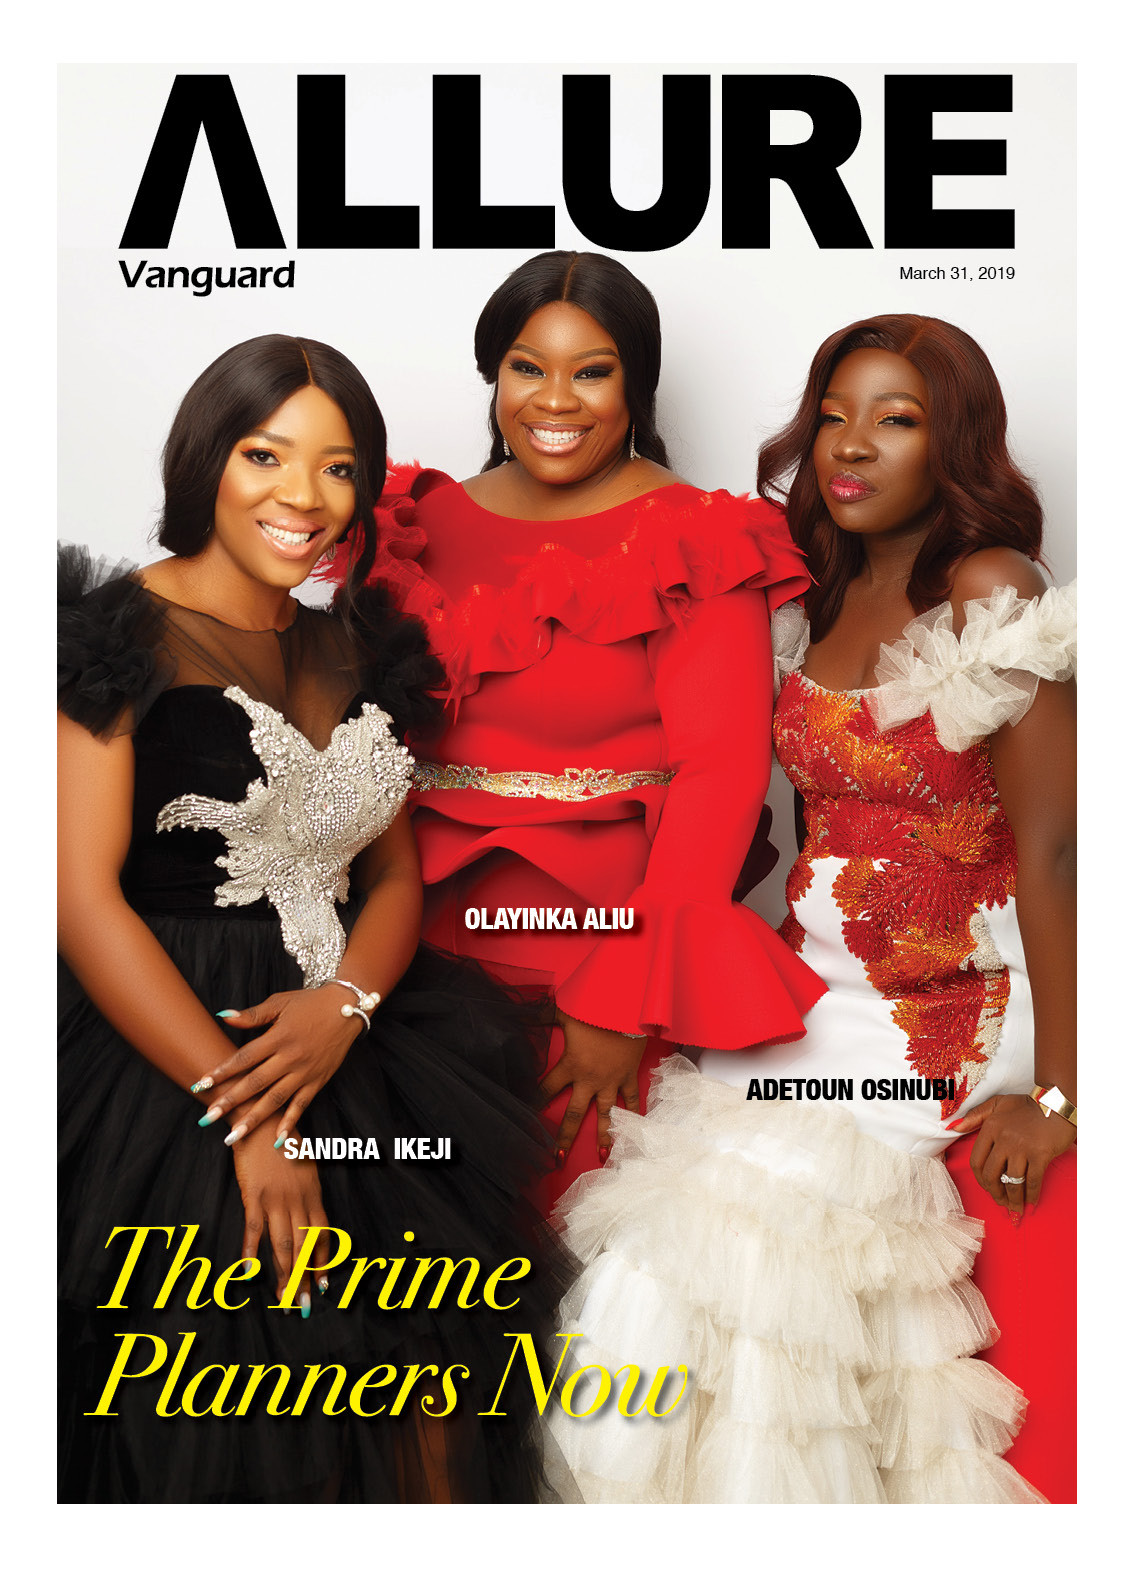 Meet the prime Event Planners every one is wagging about: Sandra Ikeji, Olayinka Aliu, Adetoun Osinubi cover Vanguard Allure